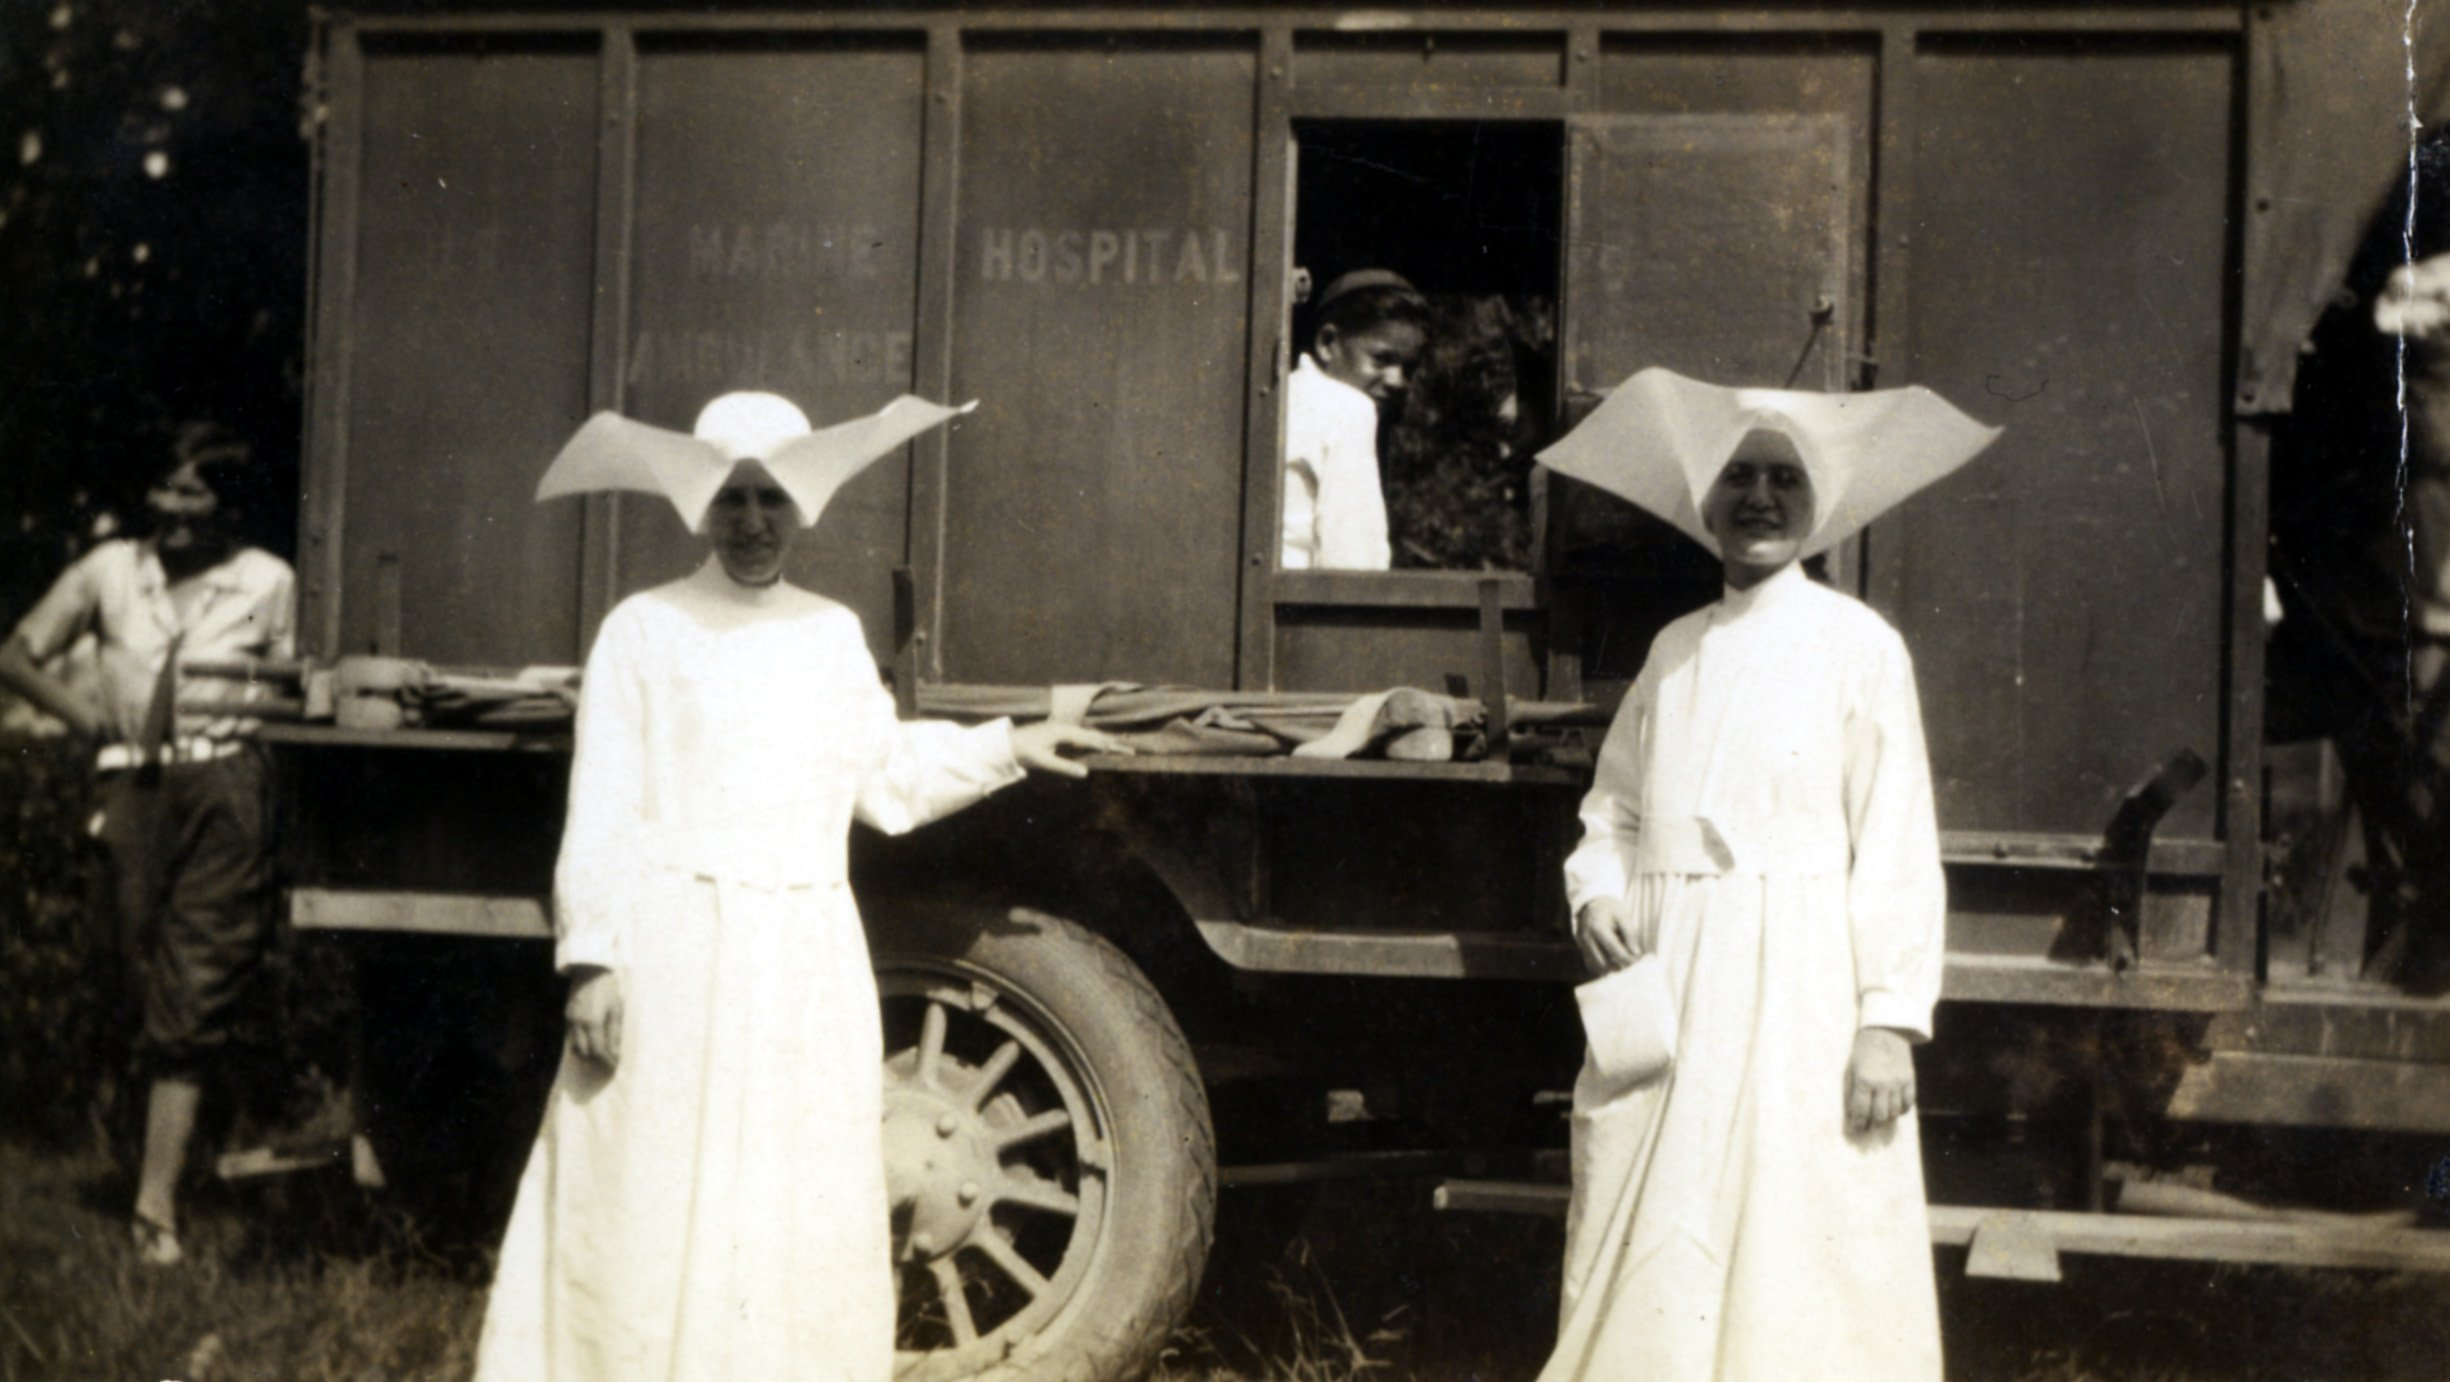 The Daughters of Charity, the first nurses at the hospital, arrived to care for the patients in 1896. Here they are pictured with two young patients. Photo 1930s.